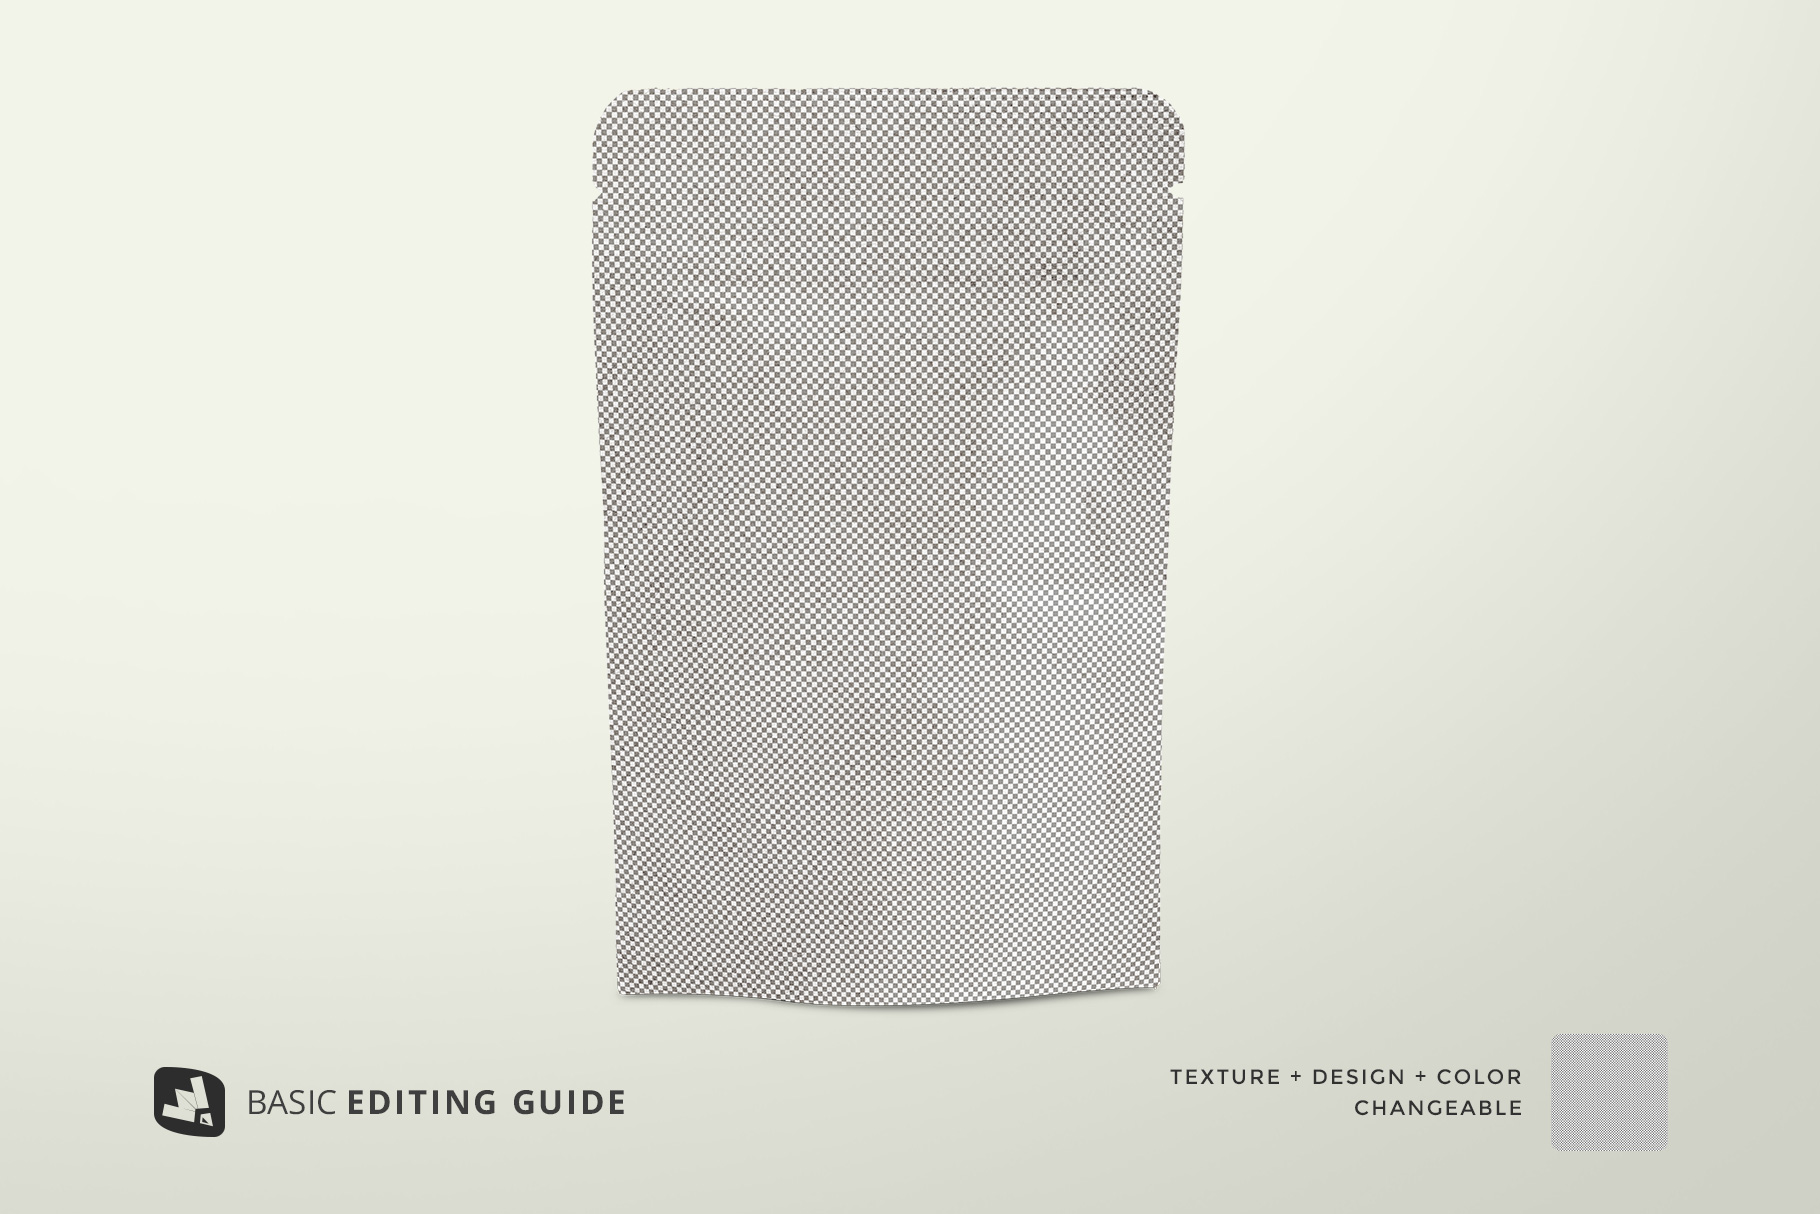 base image of the craft paper pouch packaging mockup